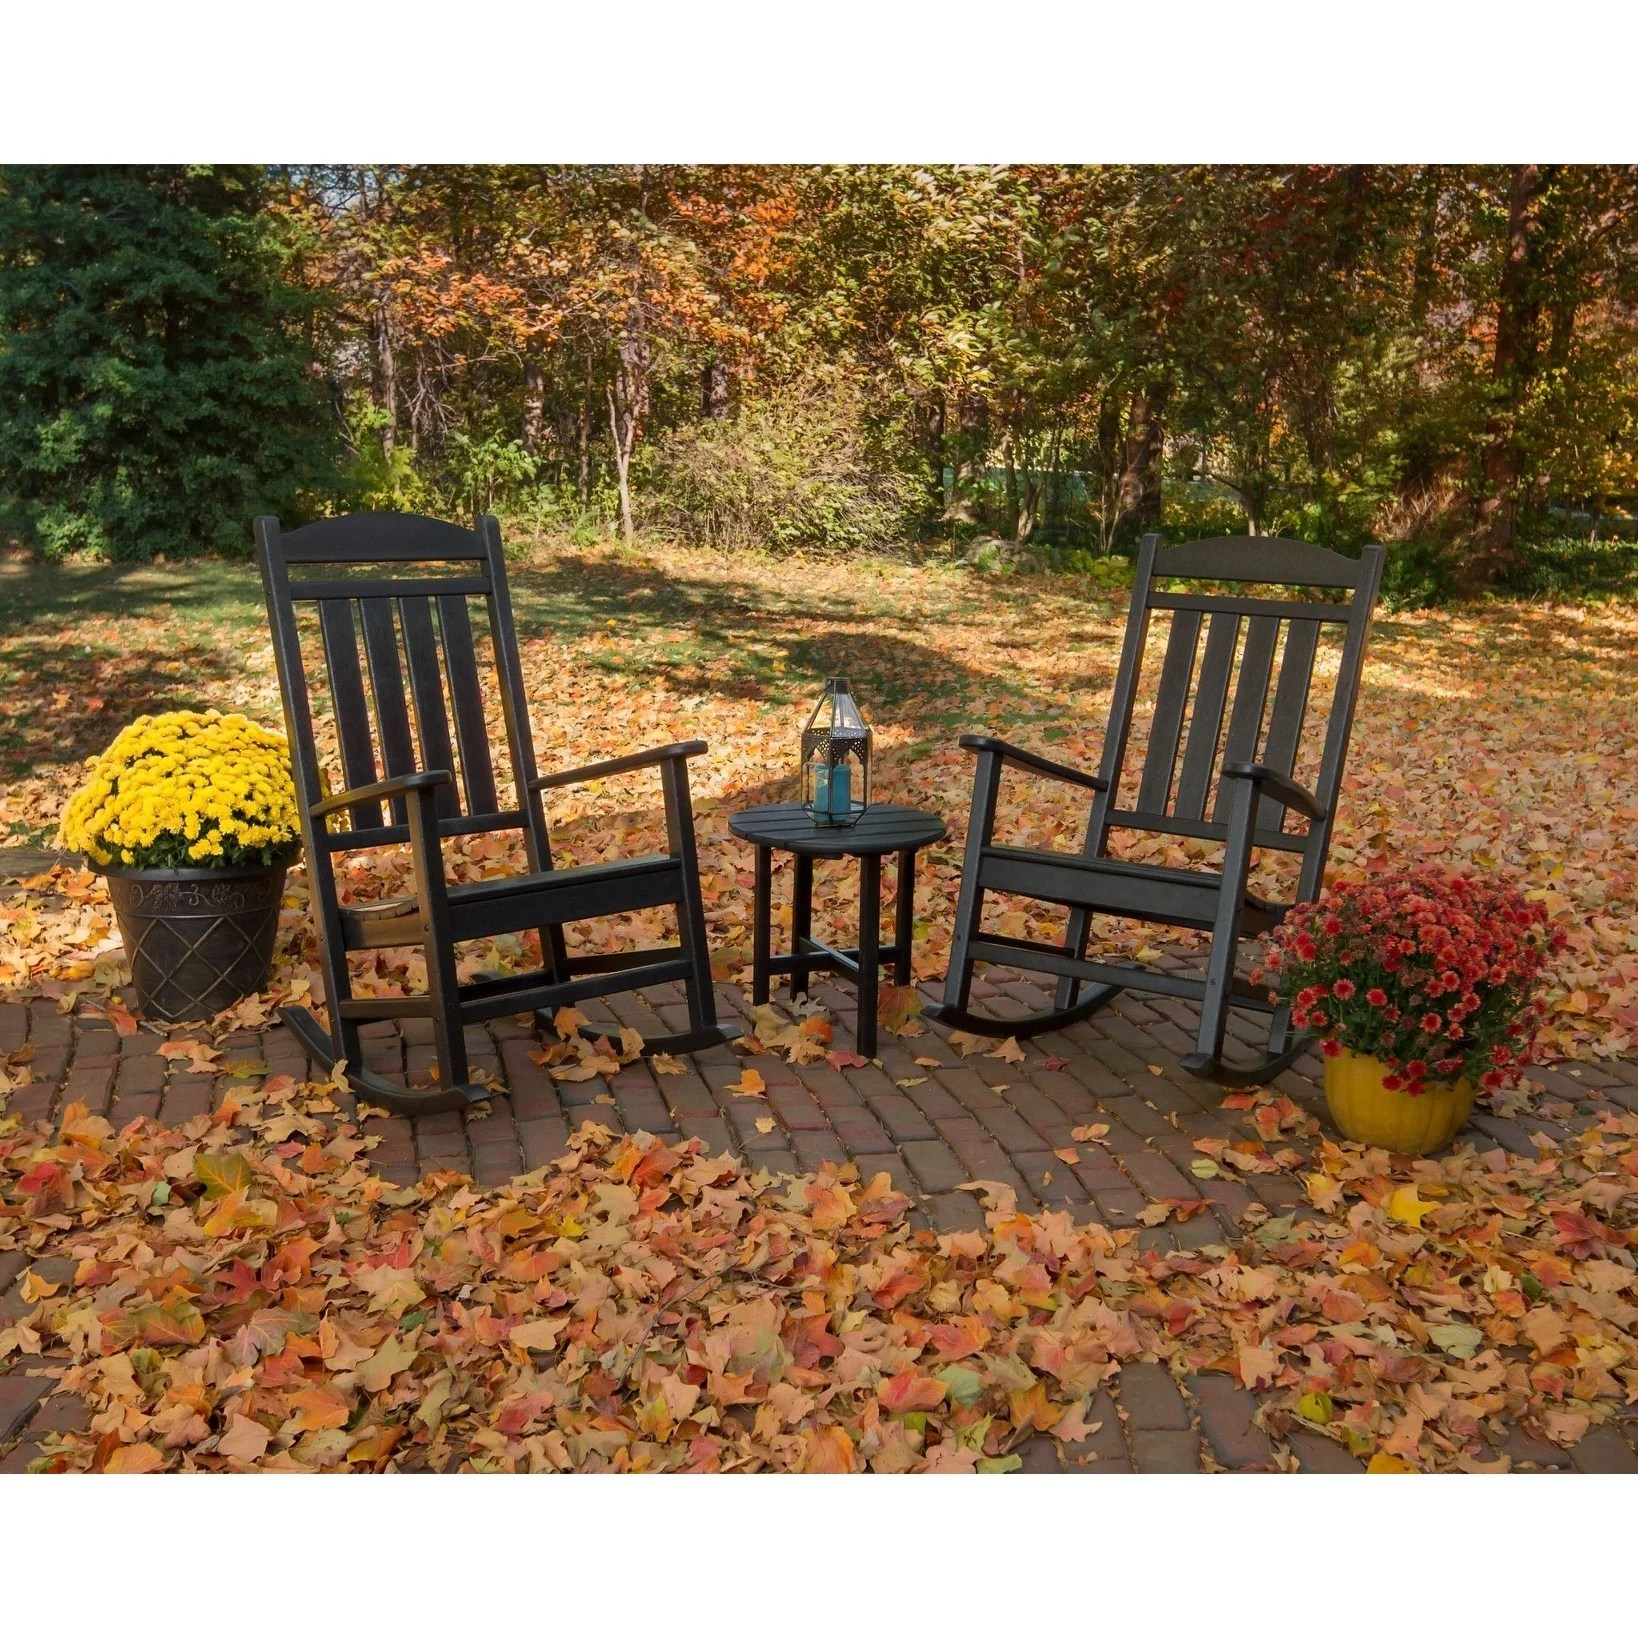 Round Table Patio Furniture Sets Polywood Presidential 3 Piece Outdoor Rocking Chair Set With Round Table